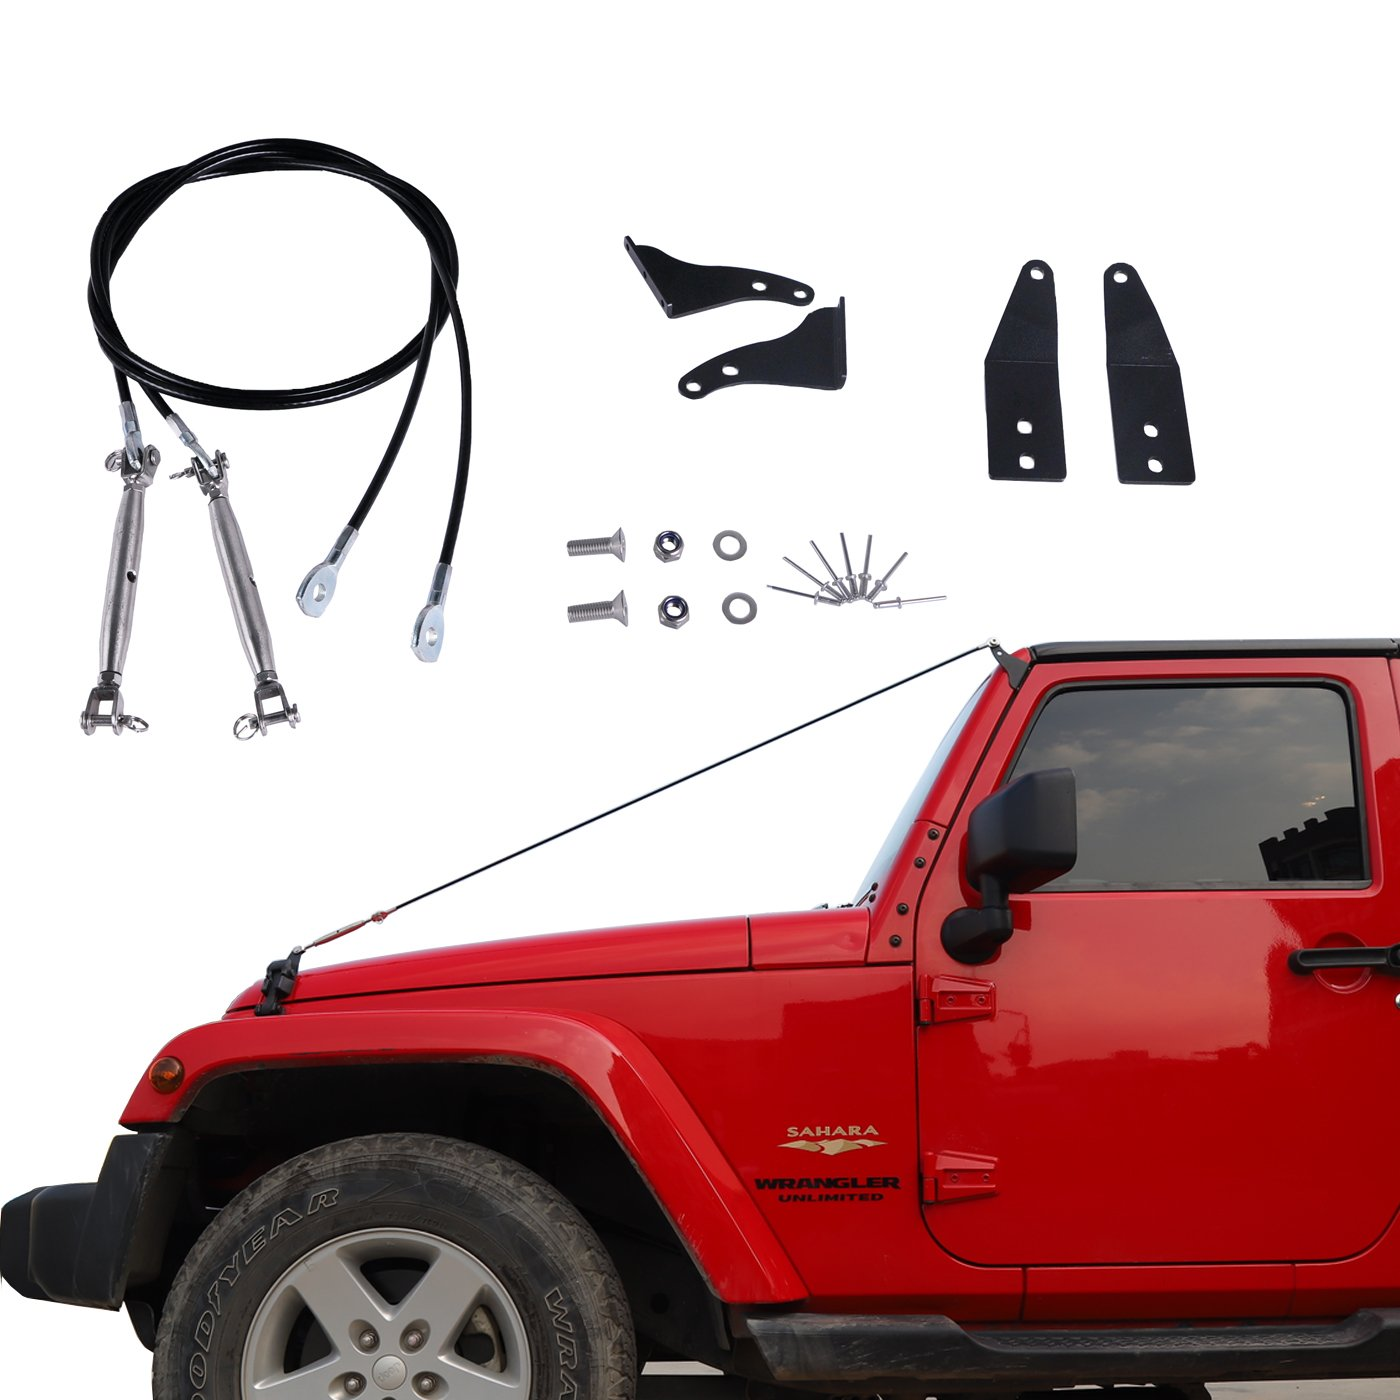 OMOTOR 2PC Limb Riser Kit fit for JK Jeep Wrangler 2007-2018, TJ Jeep Wrangler 1997-2006, Through the jungle Protector Obstacle Eliminate Rope